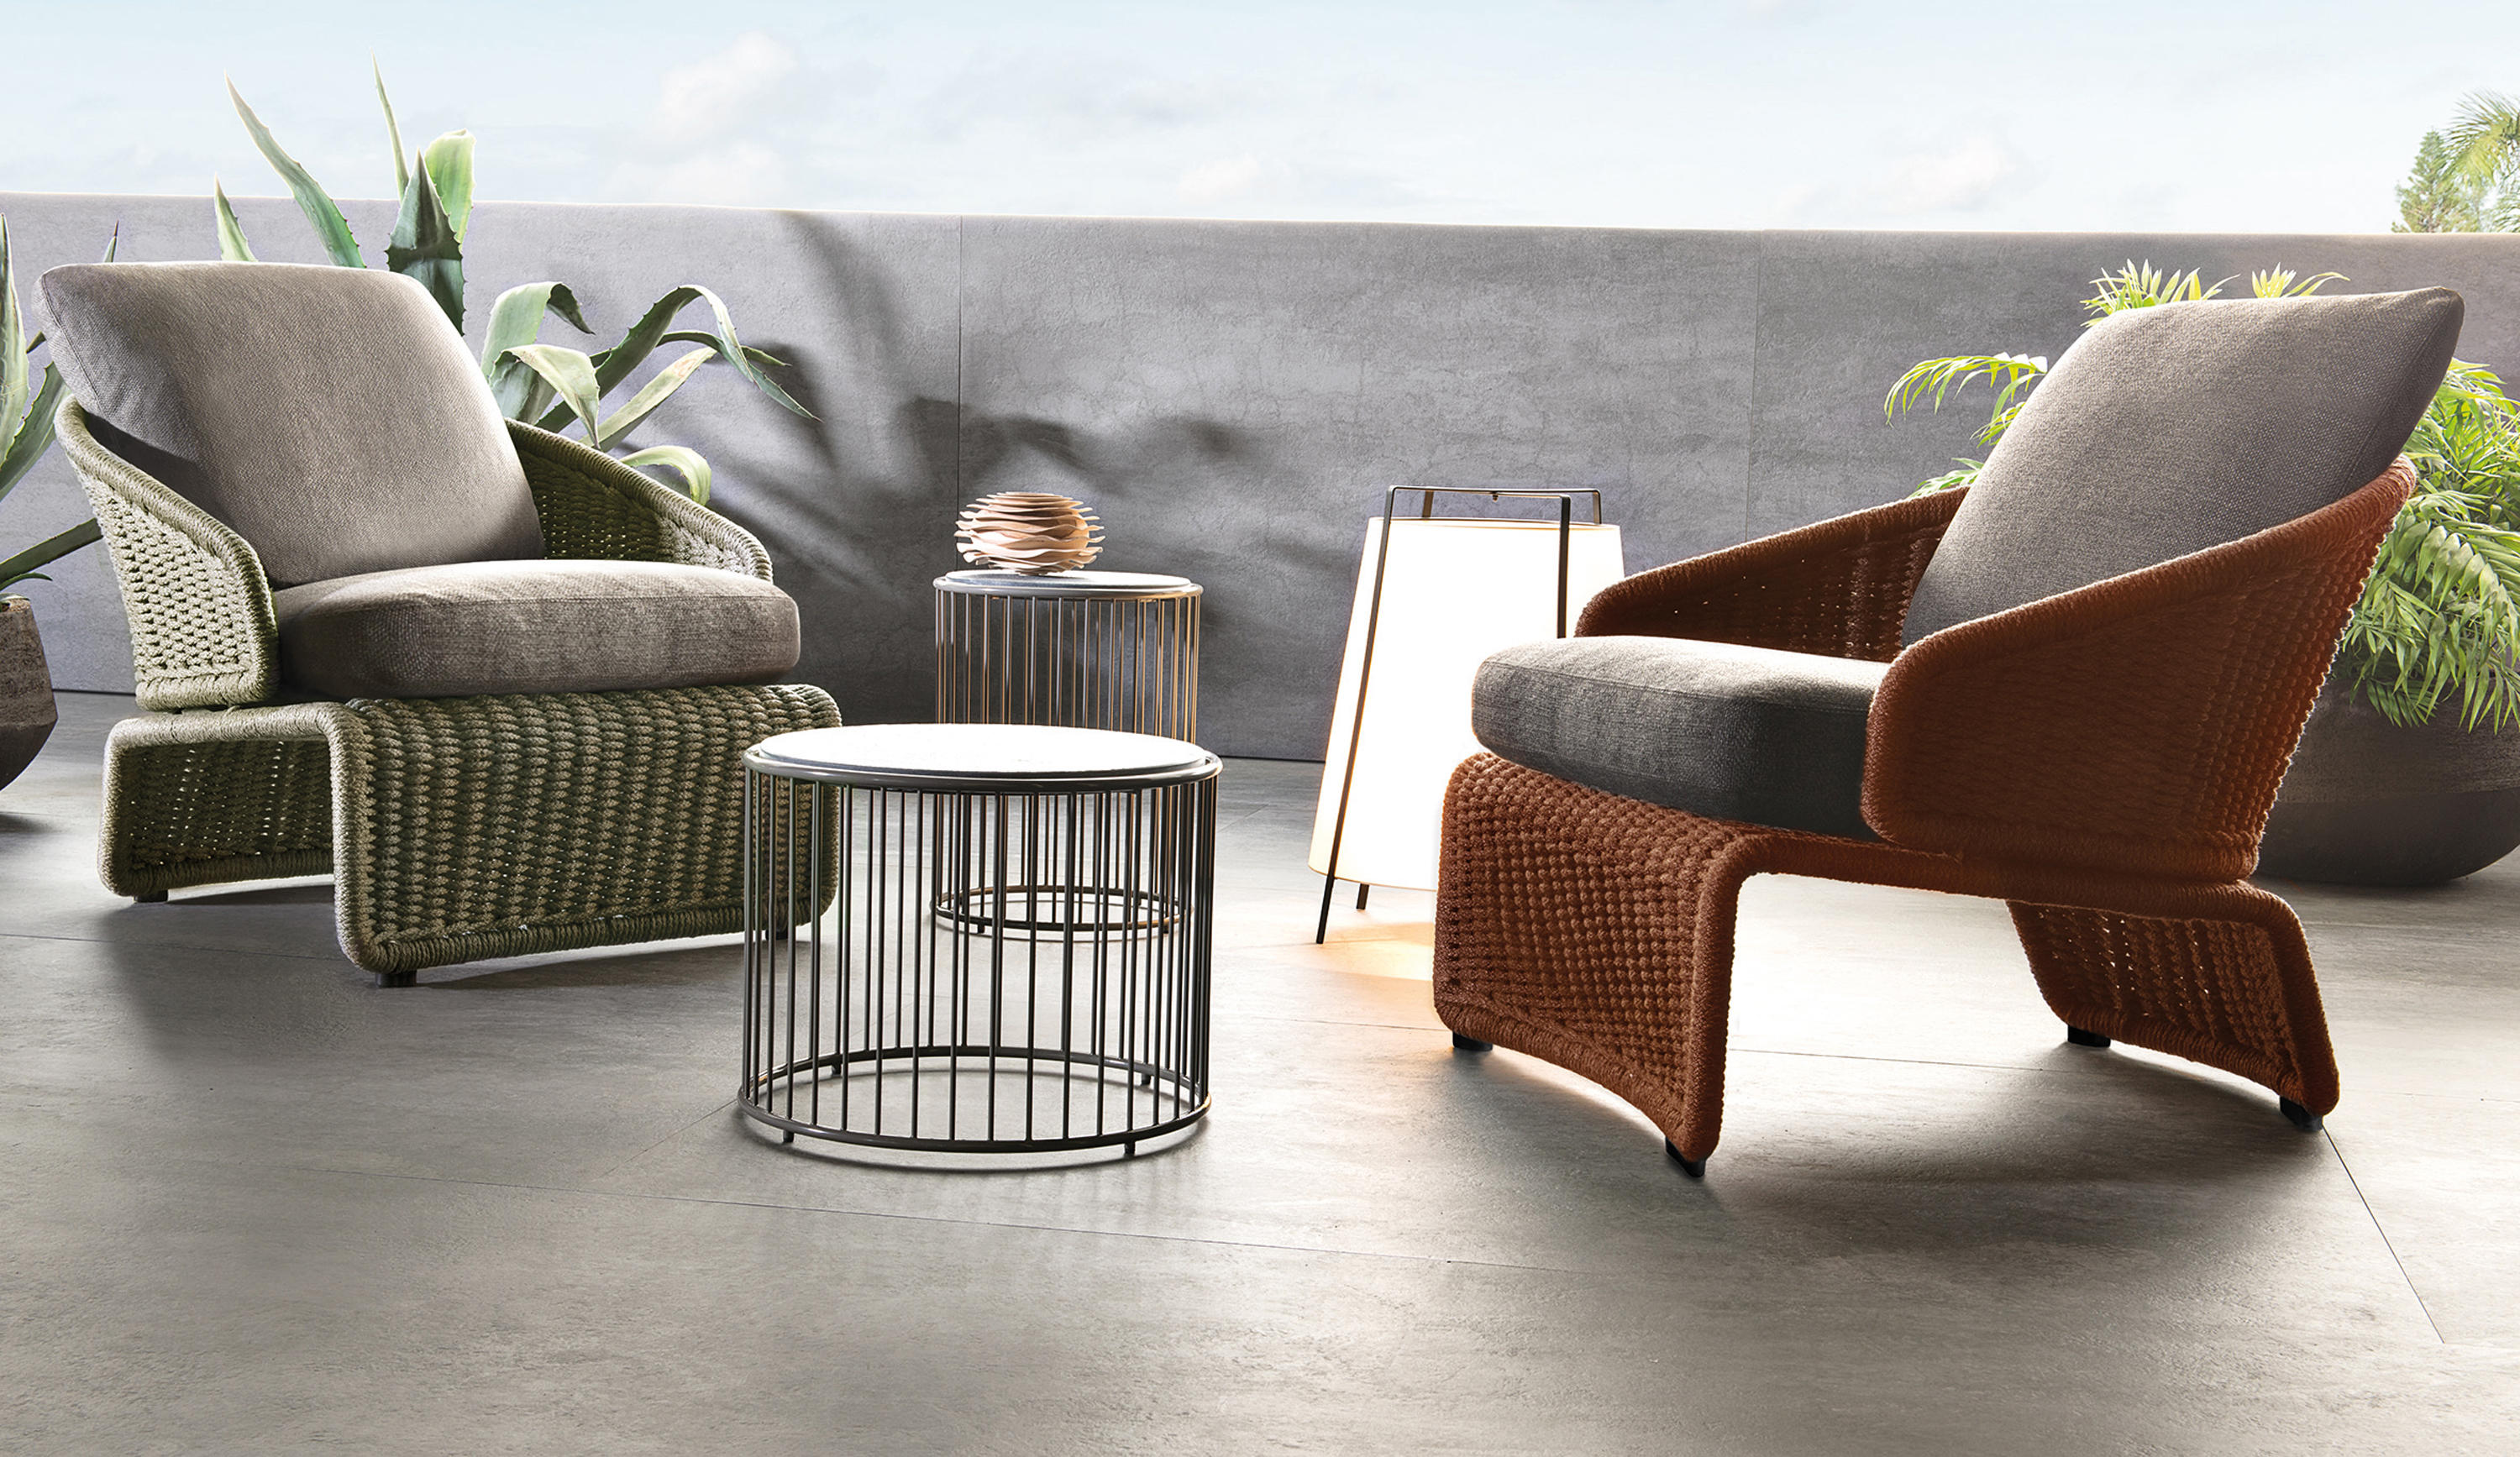 HALLEY OUTDOOR ARMCHAIR - Armchairs From Minotti